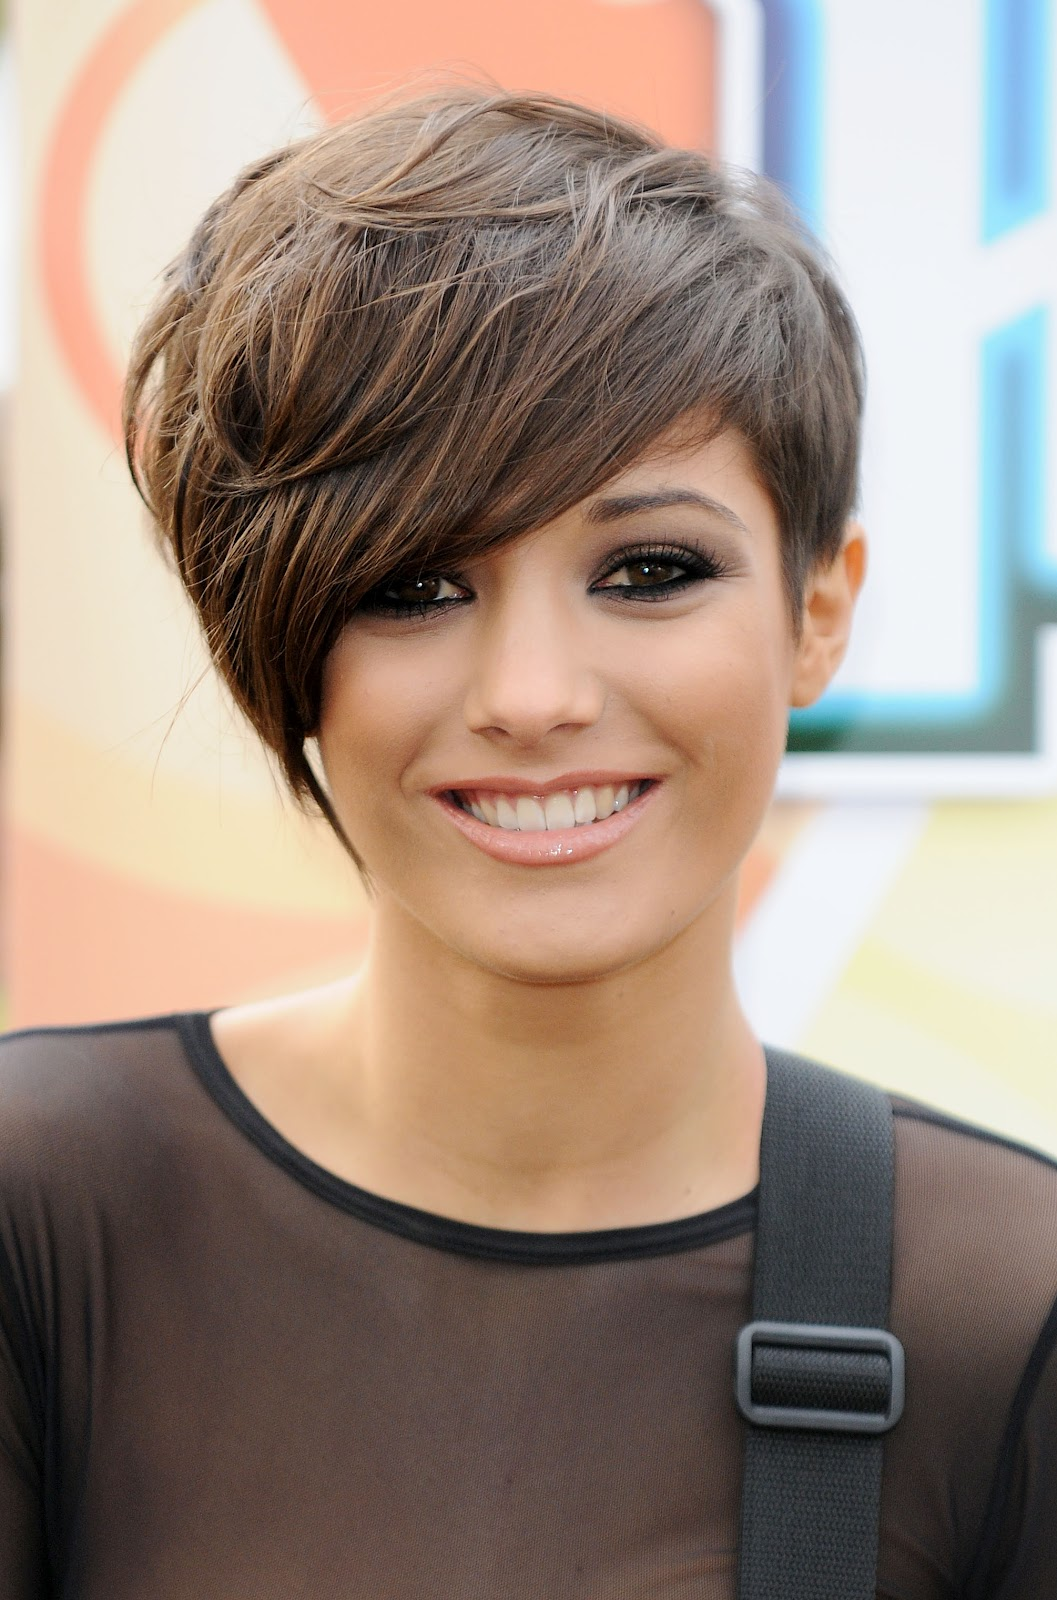 Hairstyles Photos : hairstyle pictures of frankie sandford hairstyle pictures of frankie ...